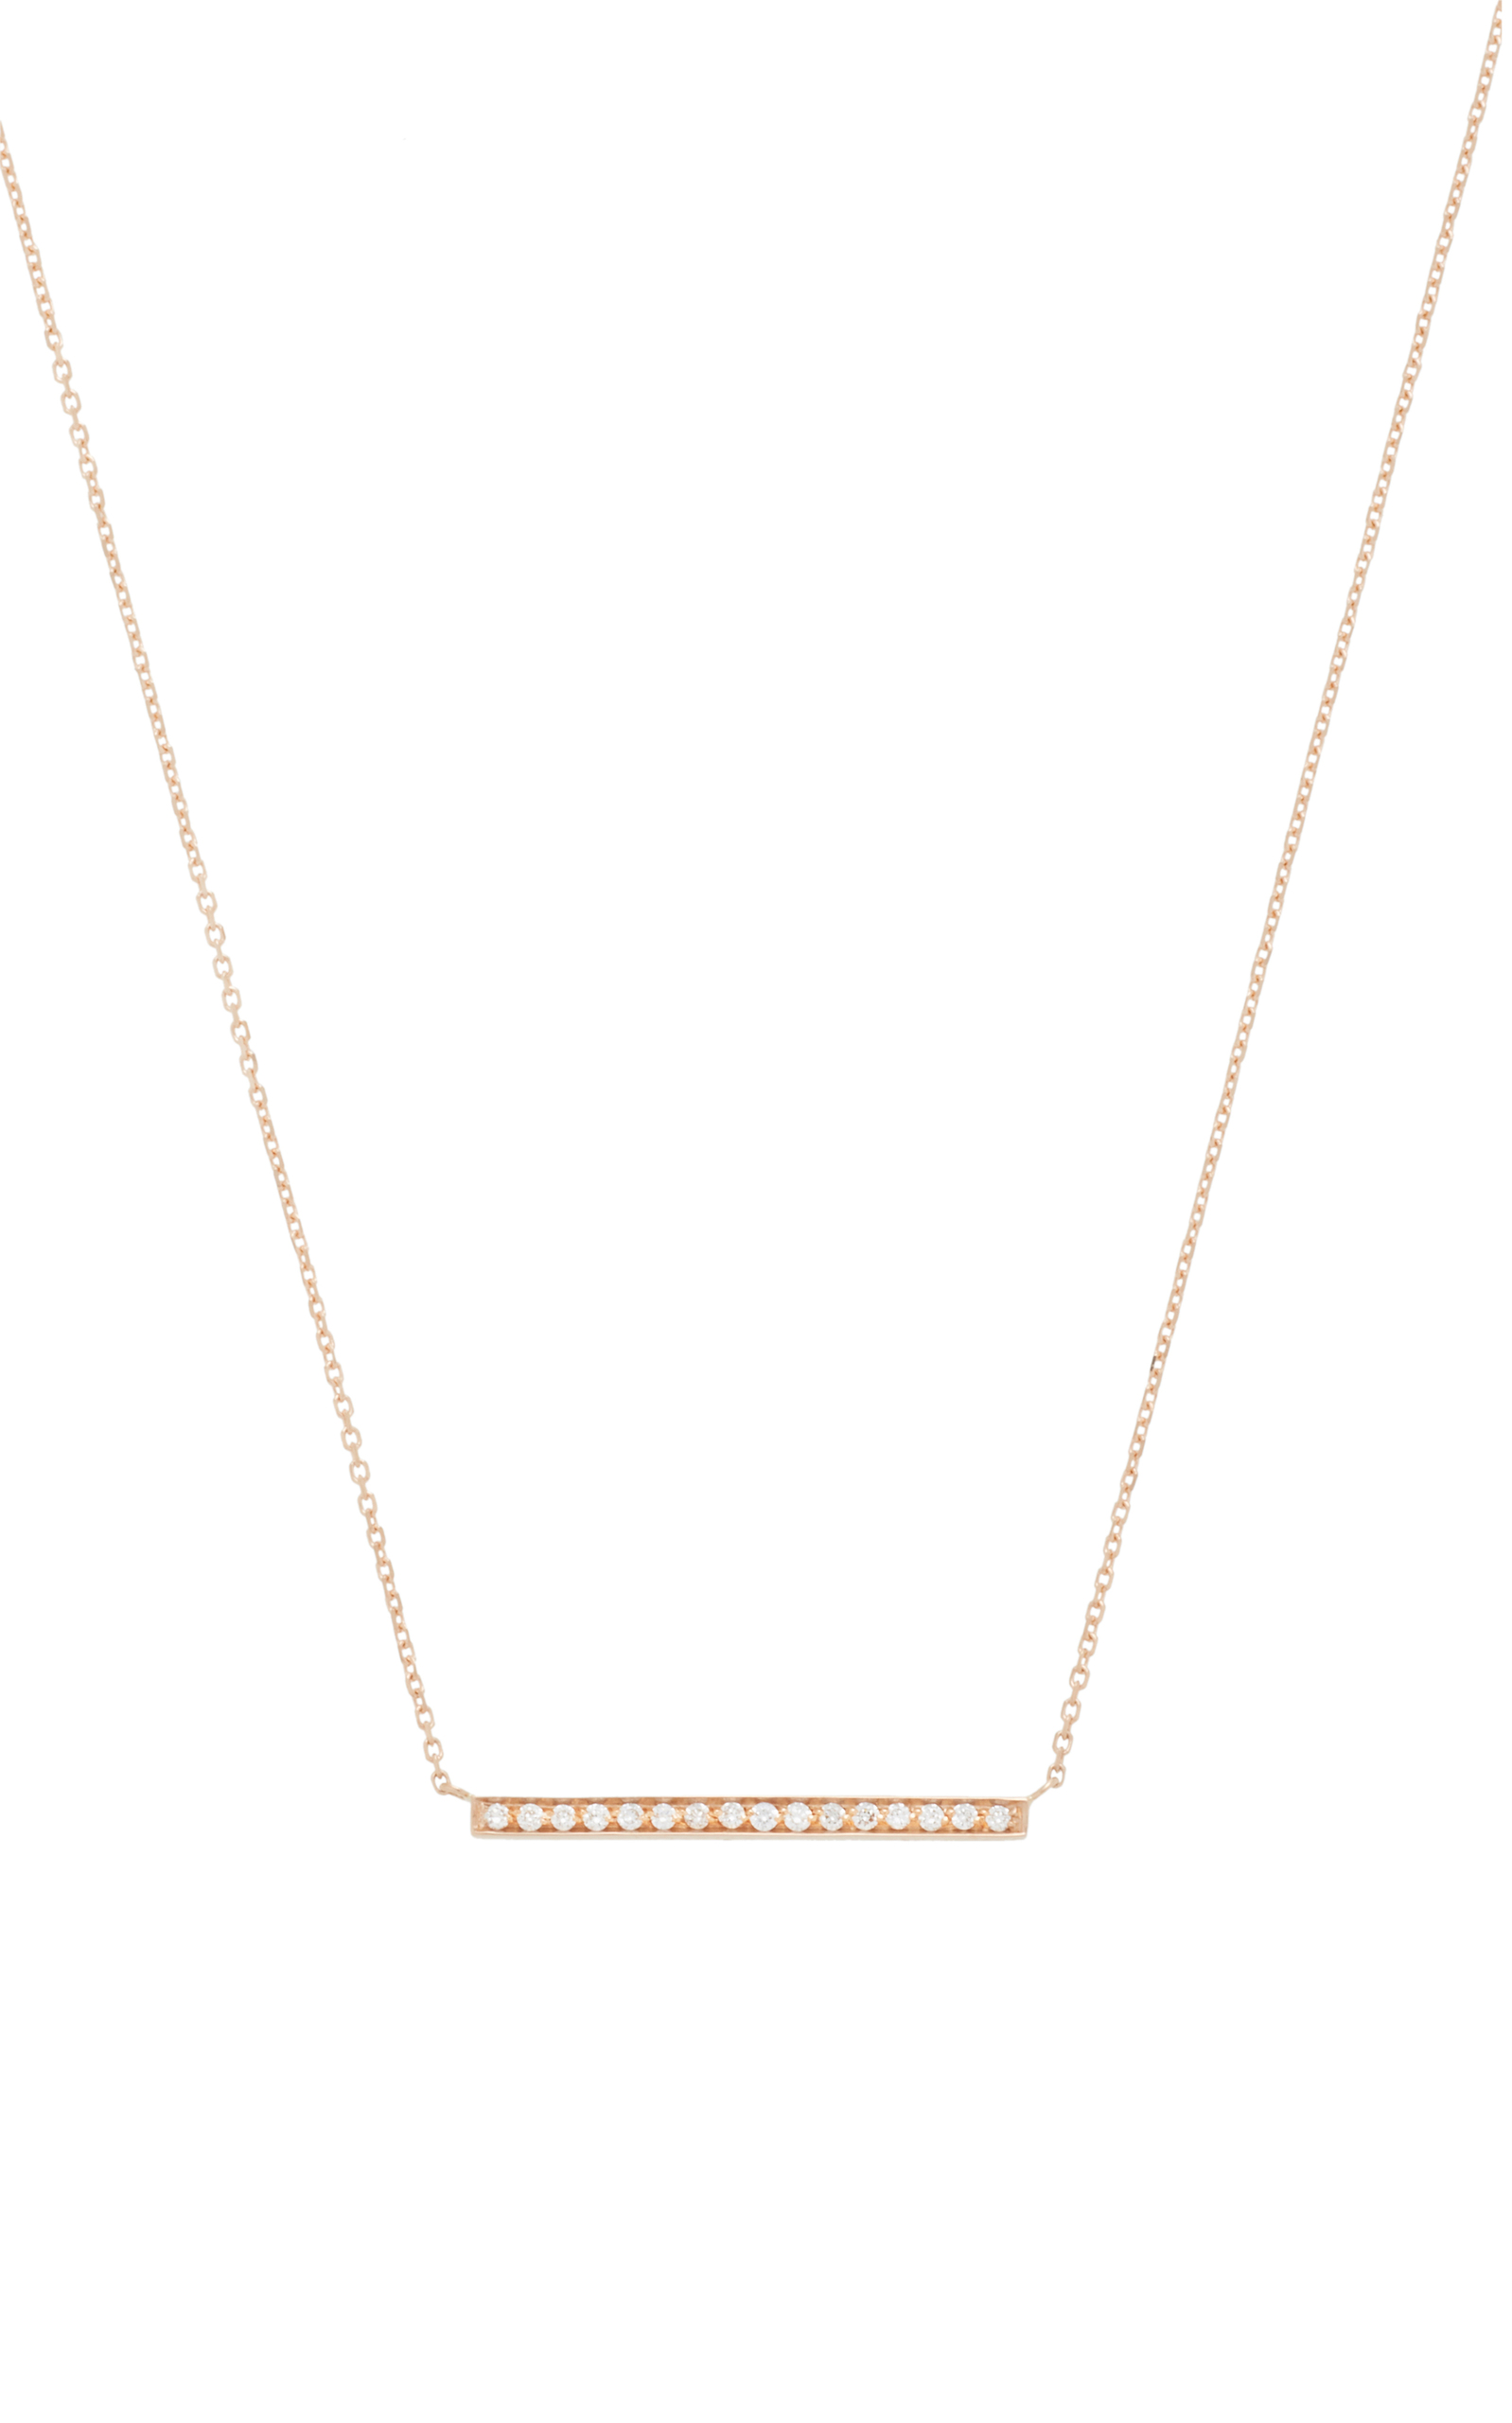 Medellin 18K Rose Gold Diamond Necklace Vanrycke BVG5V